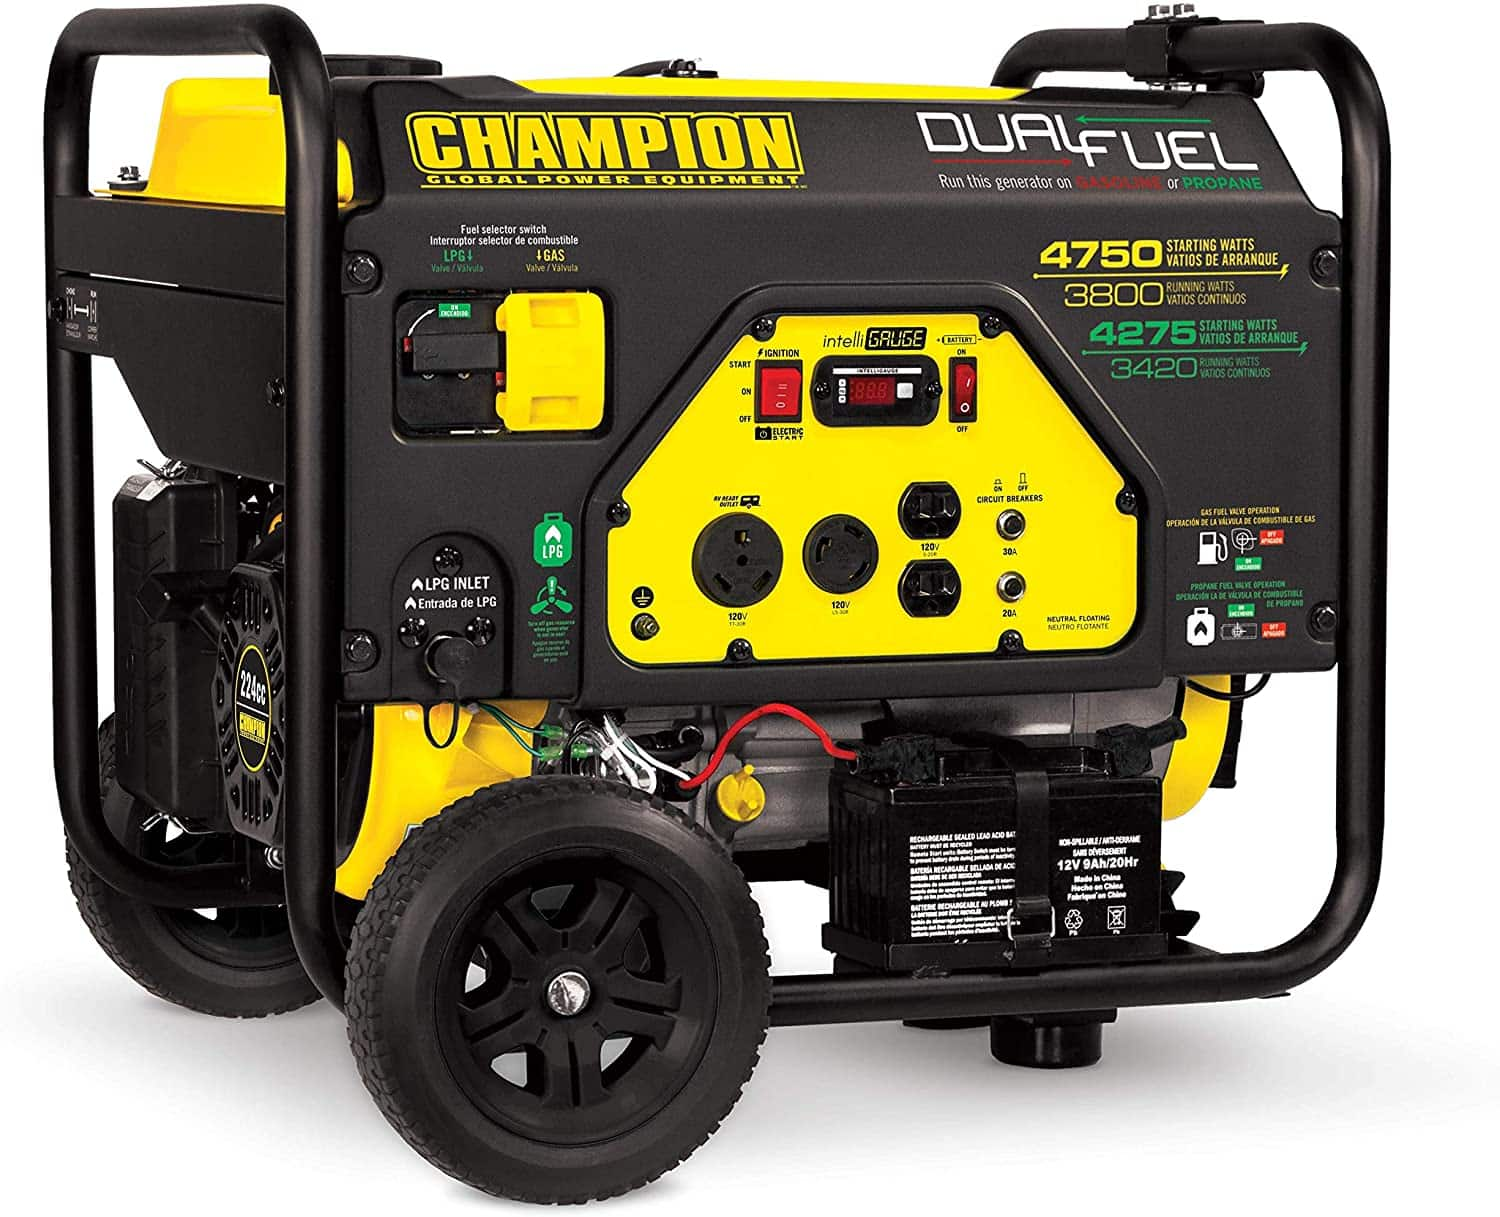 Champion Power Equipment 76533 4750/3800-Watt Dual Fuel